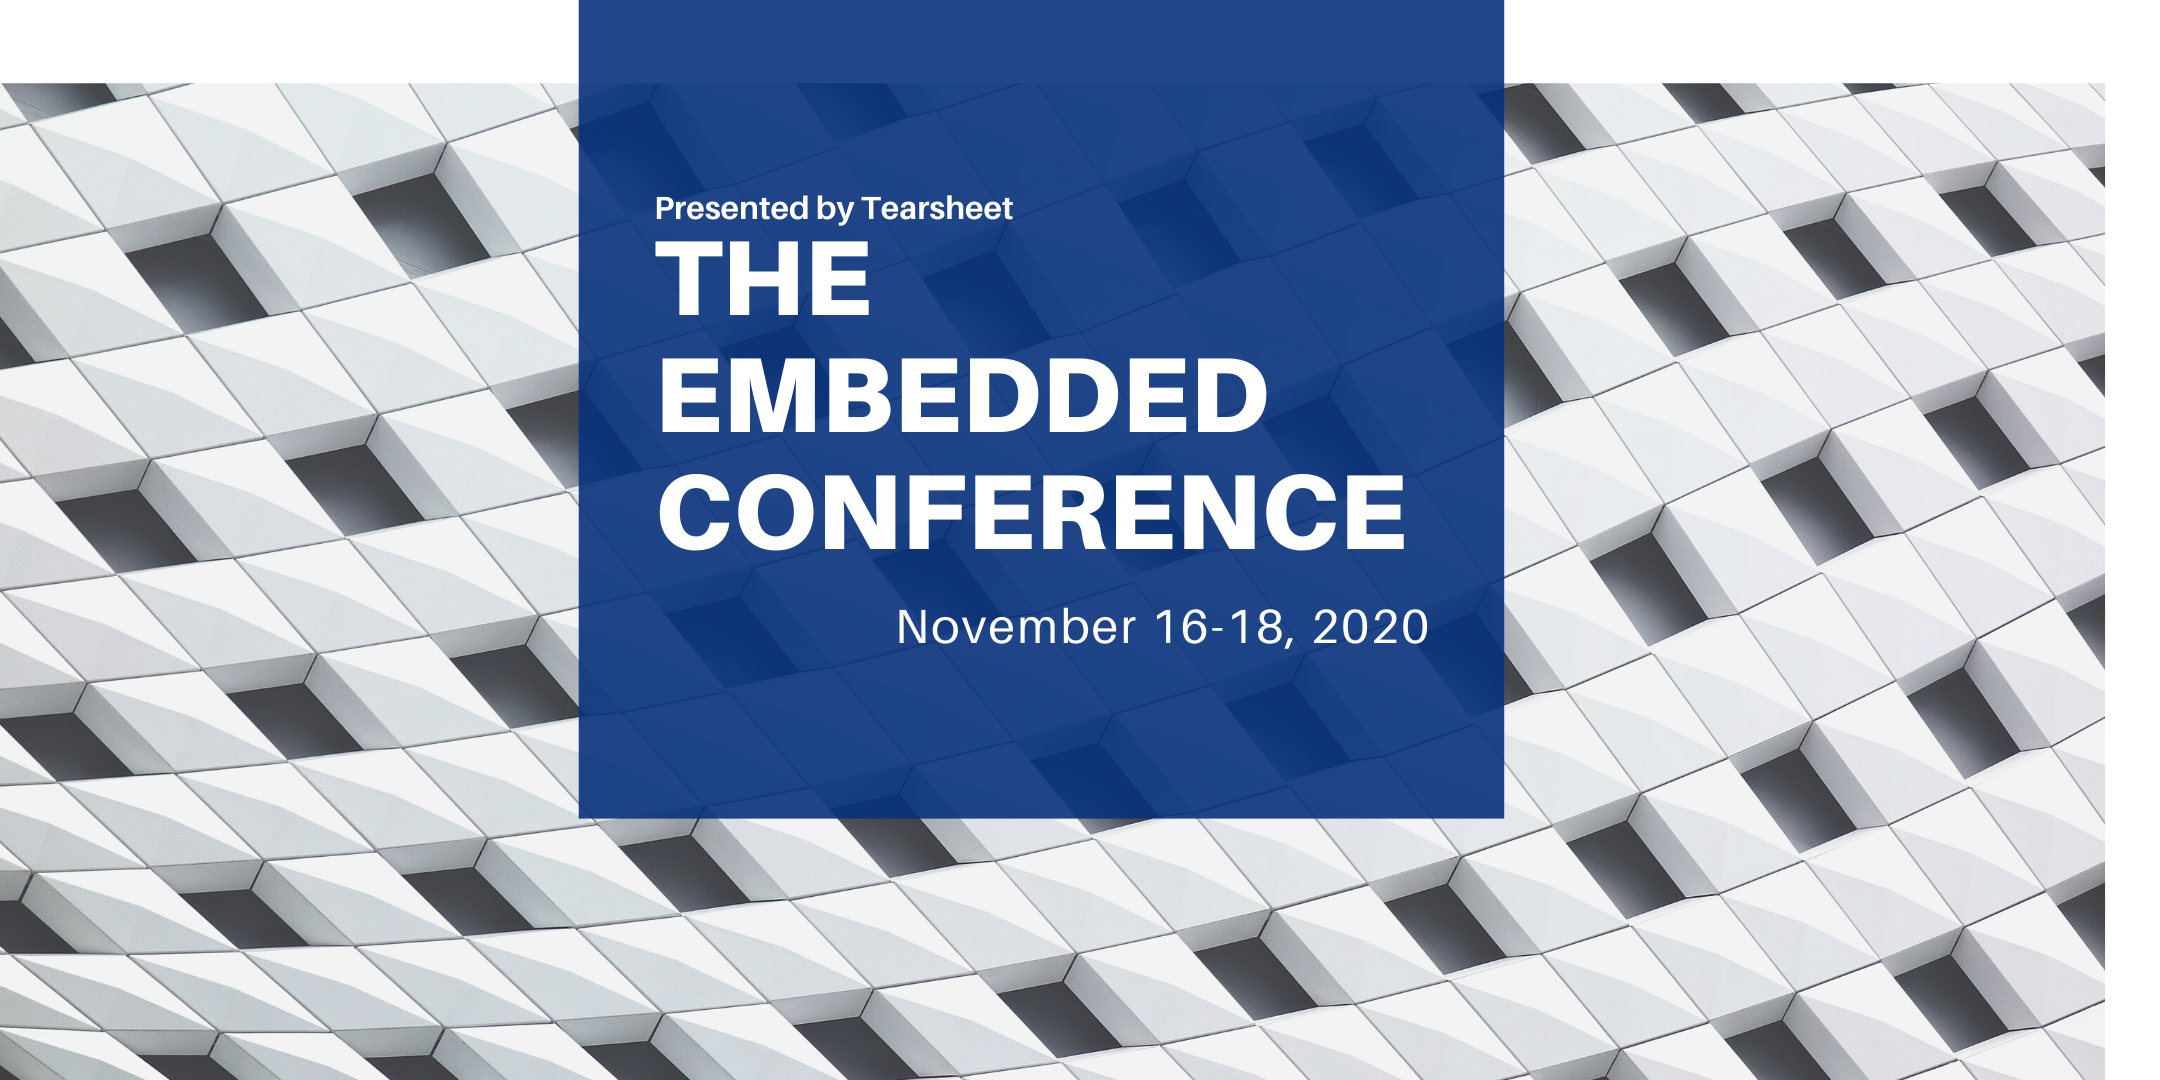 Tearsheet's Embedded Conference 2020